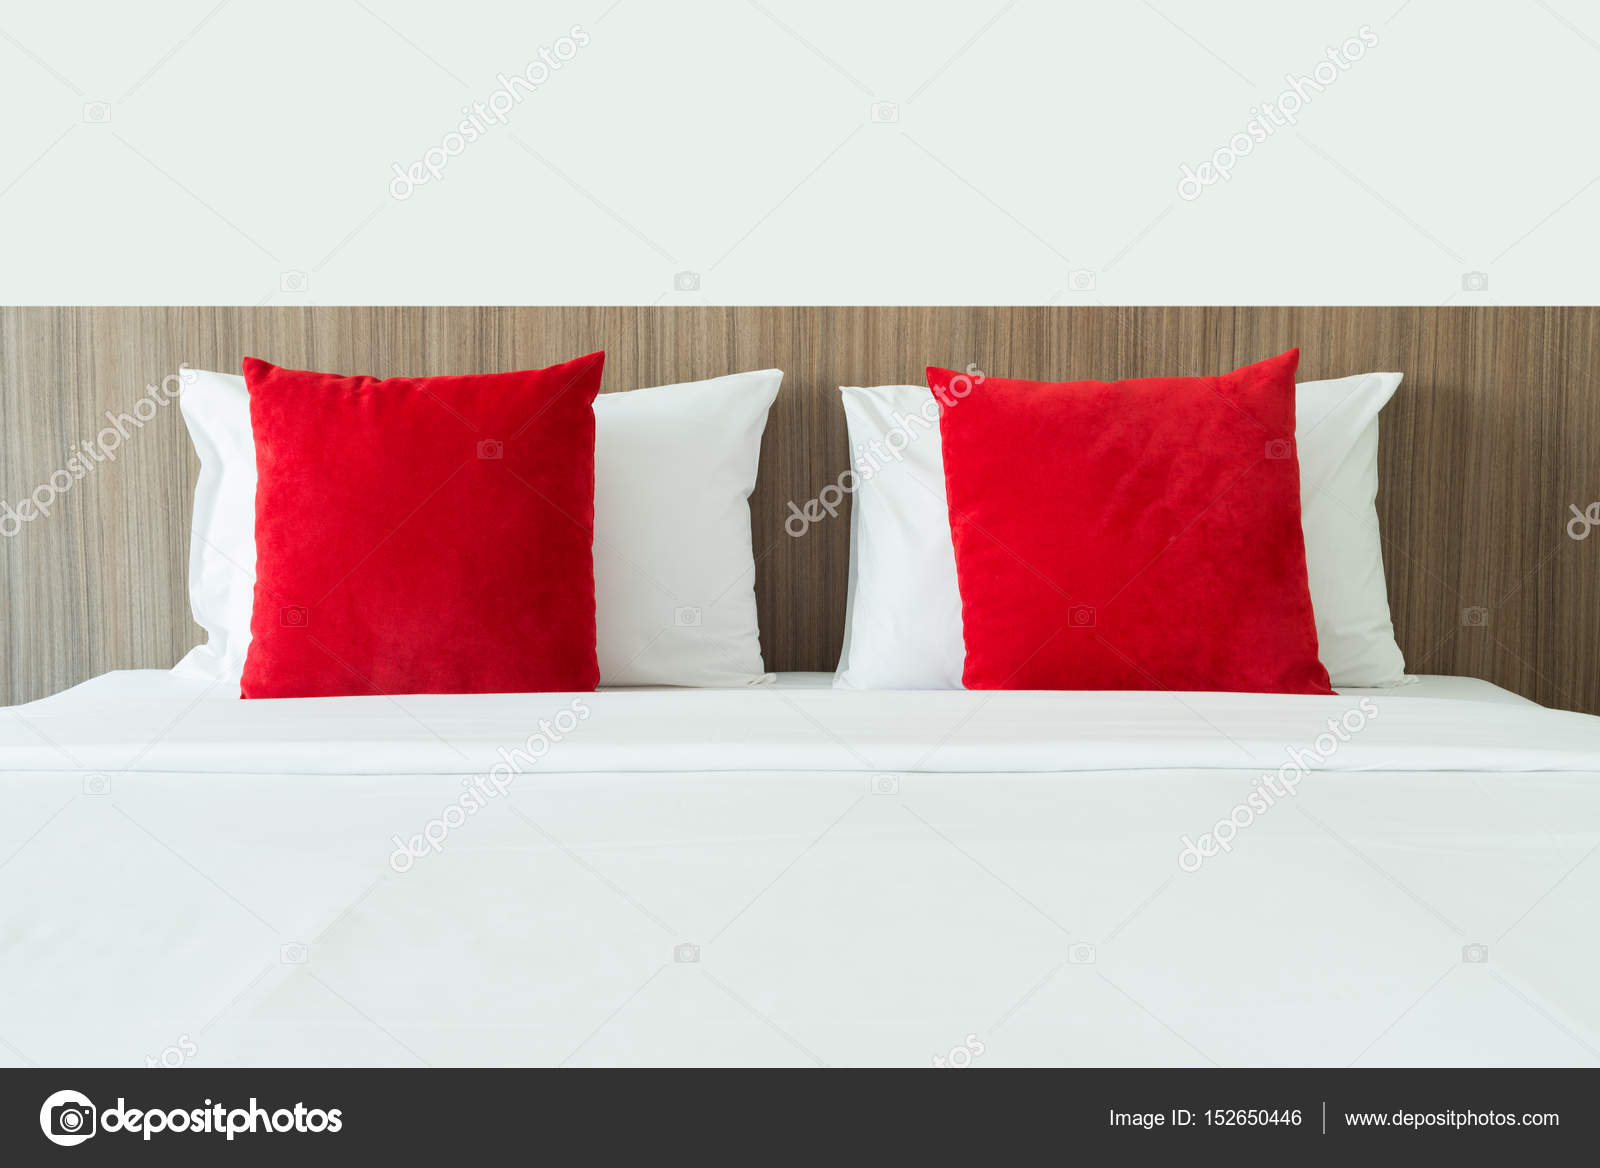 Cuscini Bianchi E Rossi.Red And White Pillows On A Bed Stock Photo C Kittichai 152650446